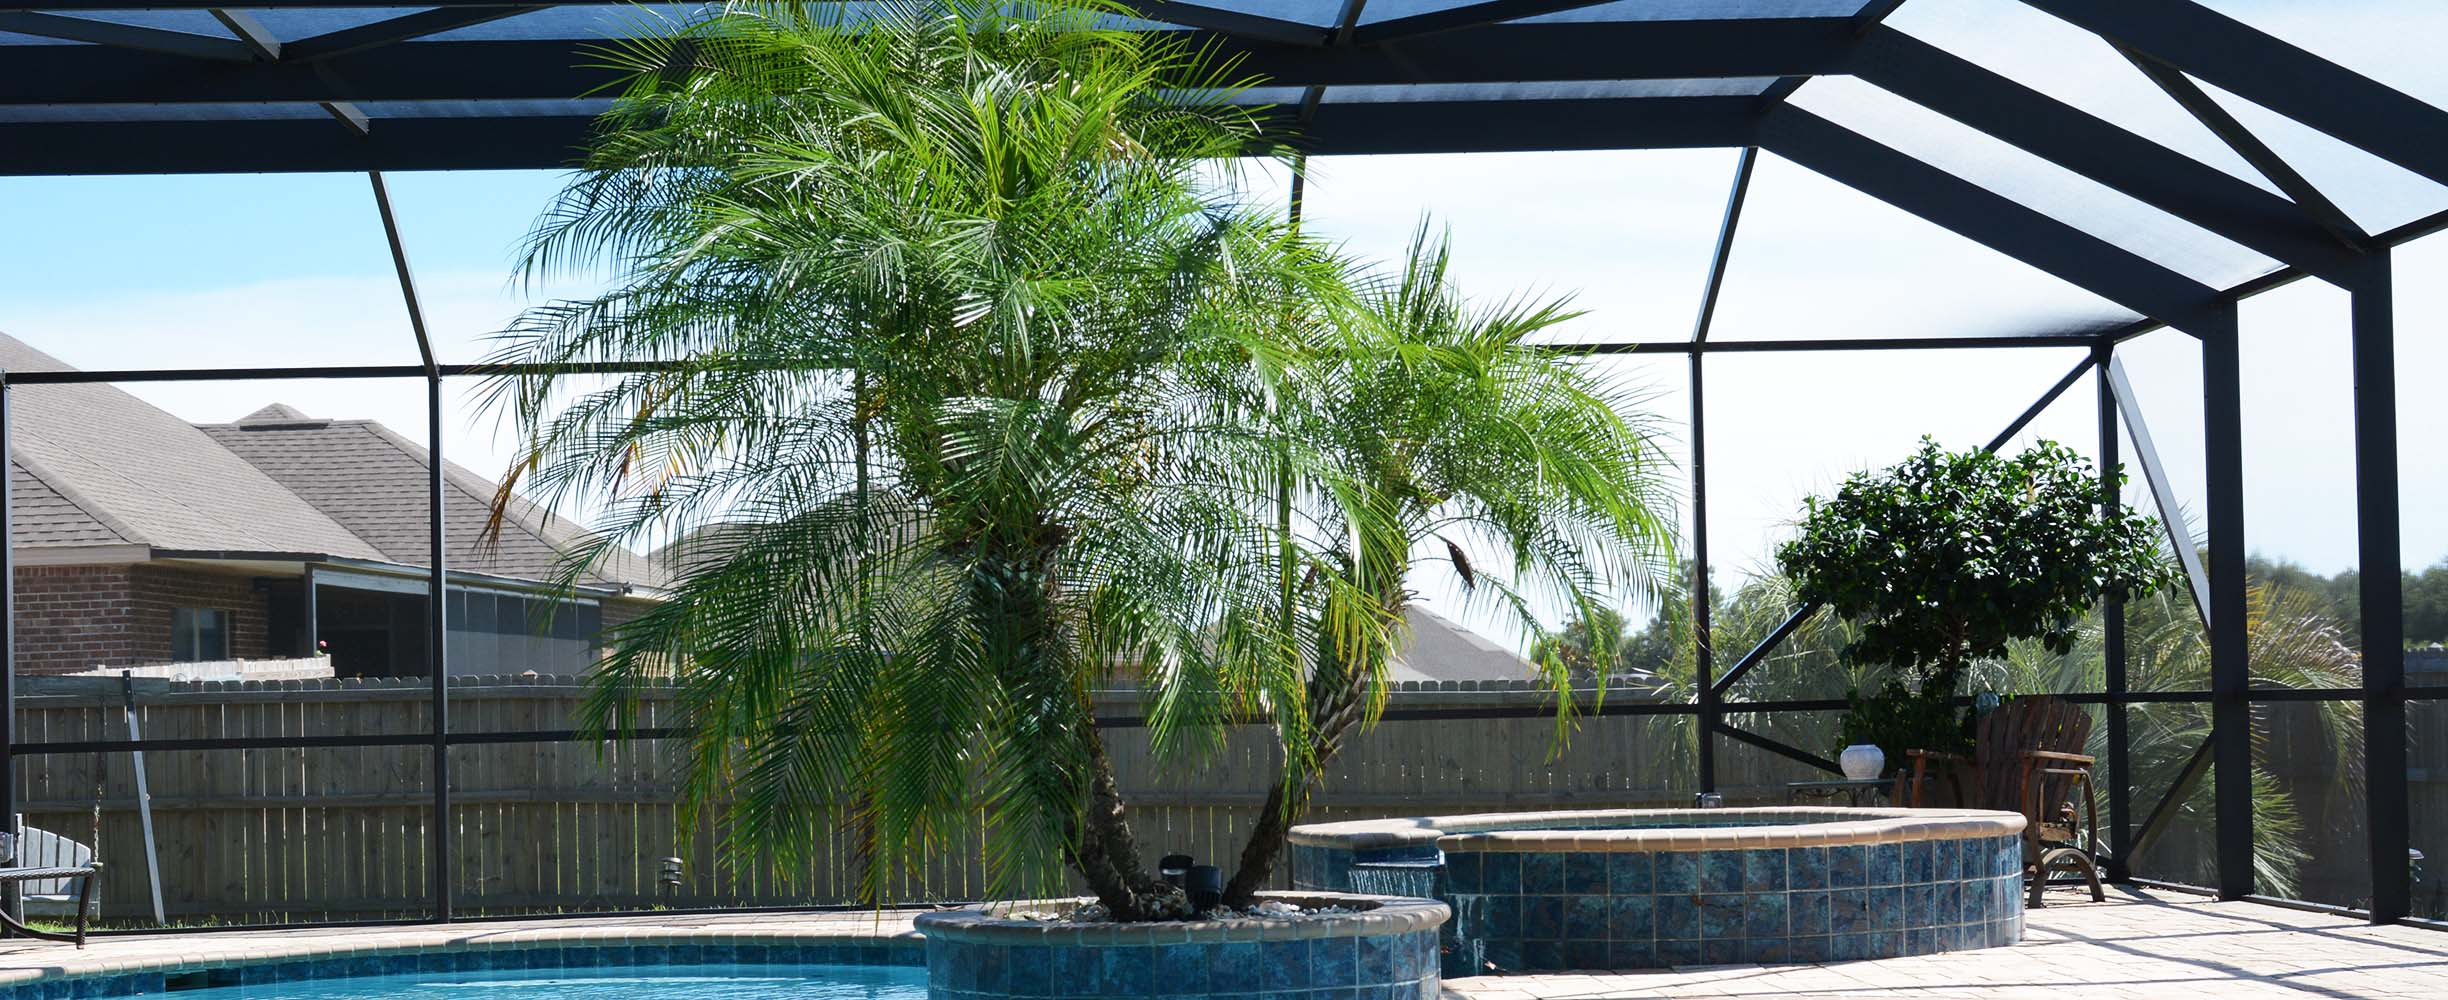 Beautiful cost-effective custom designed and built swimming pool enclosure in Foley, Baldwin County, Alabama